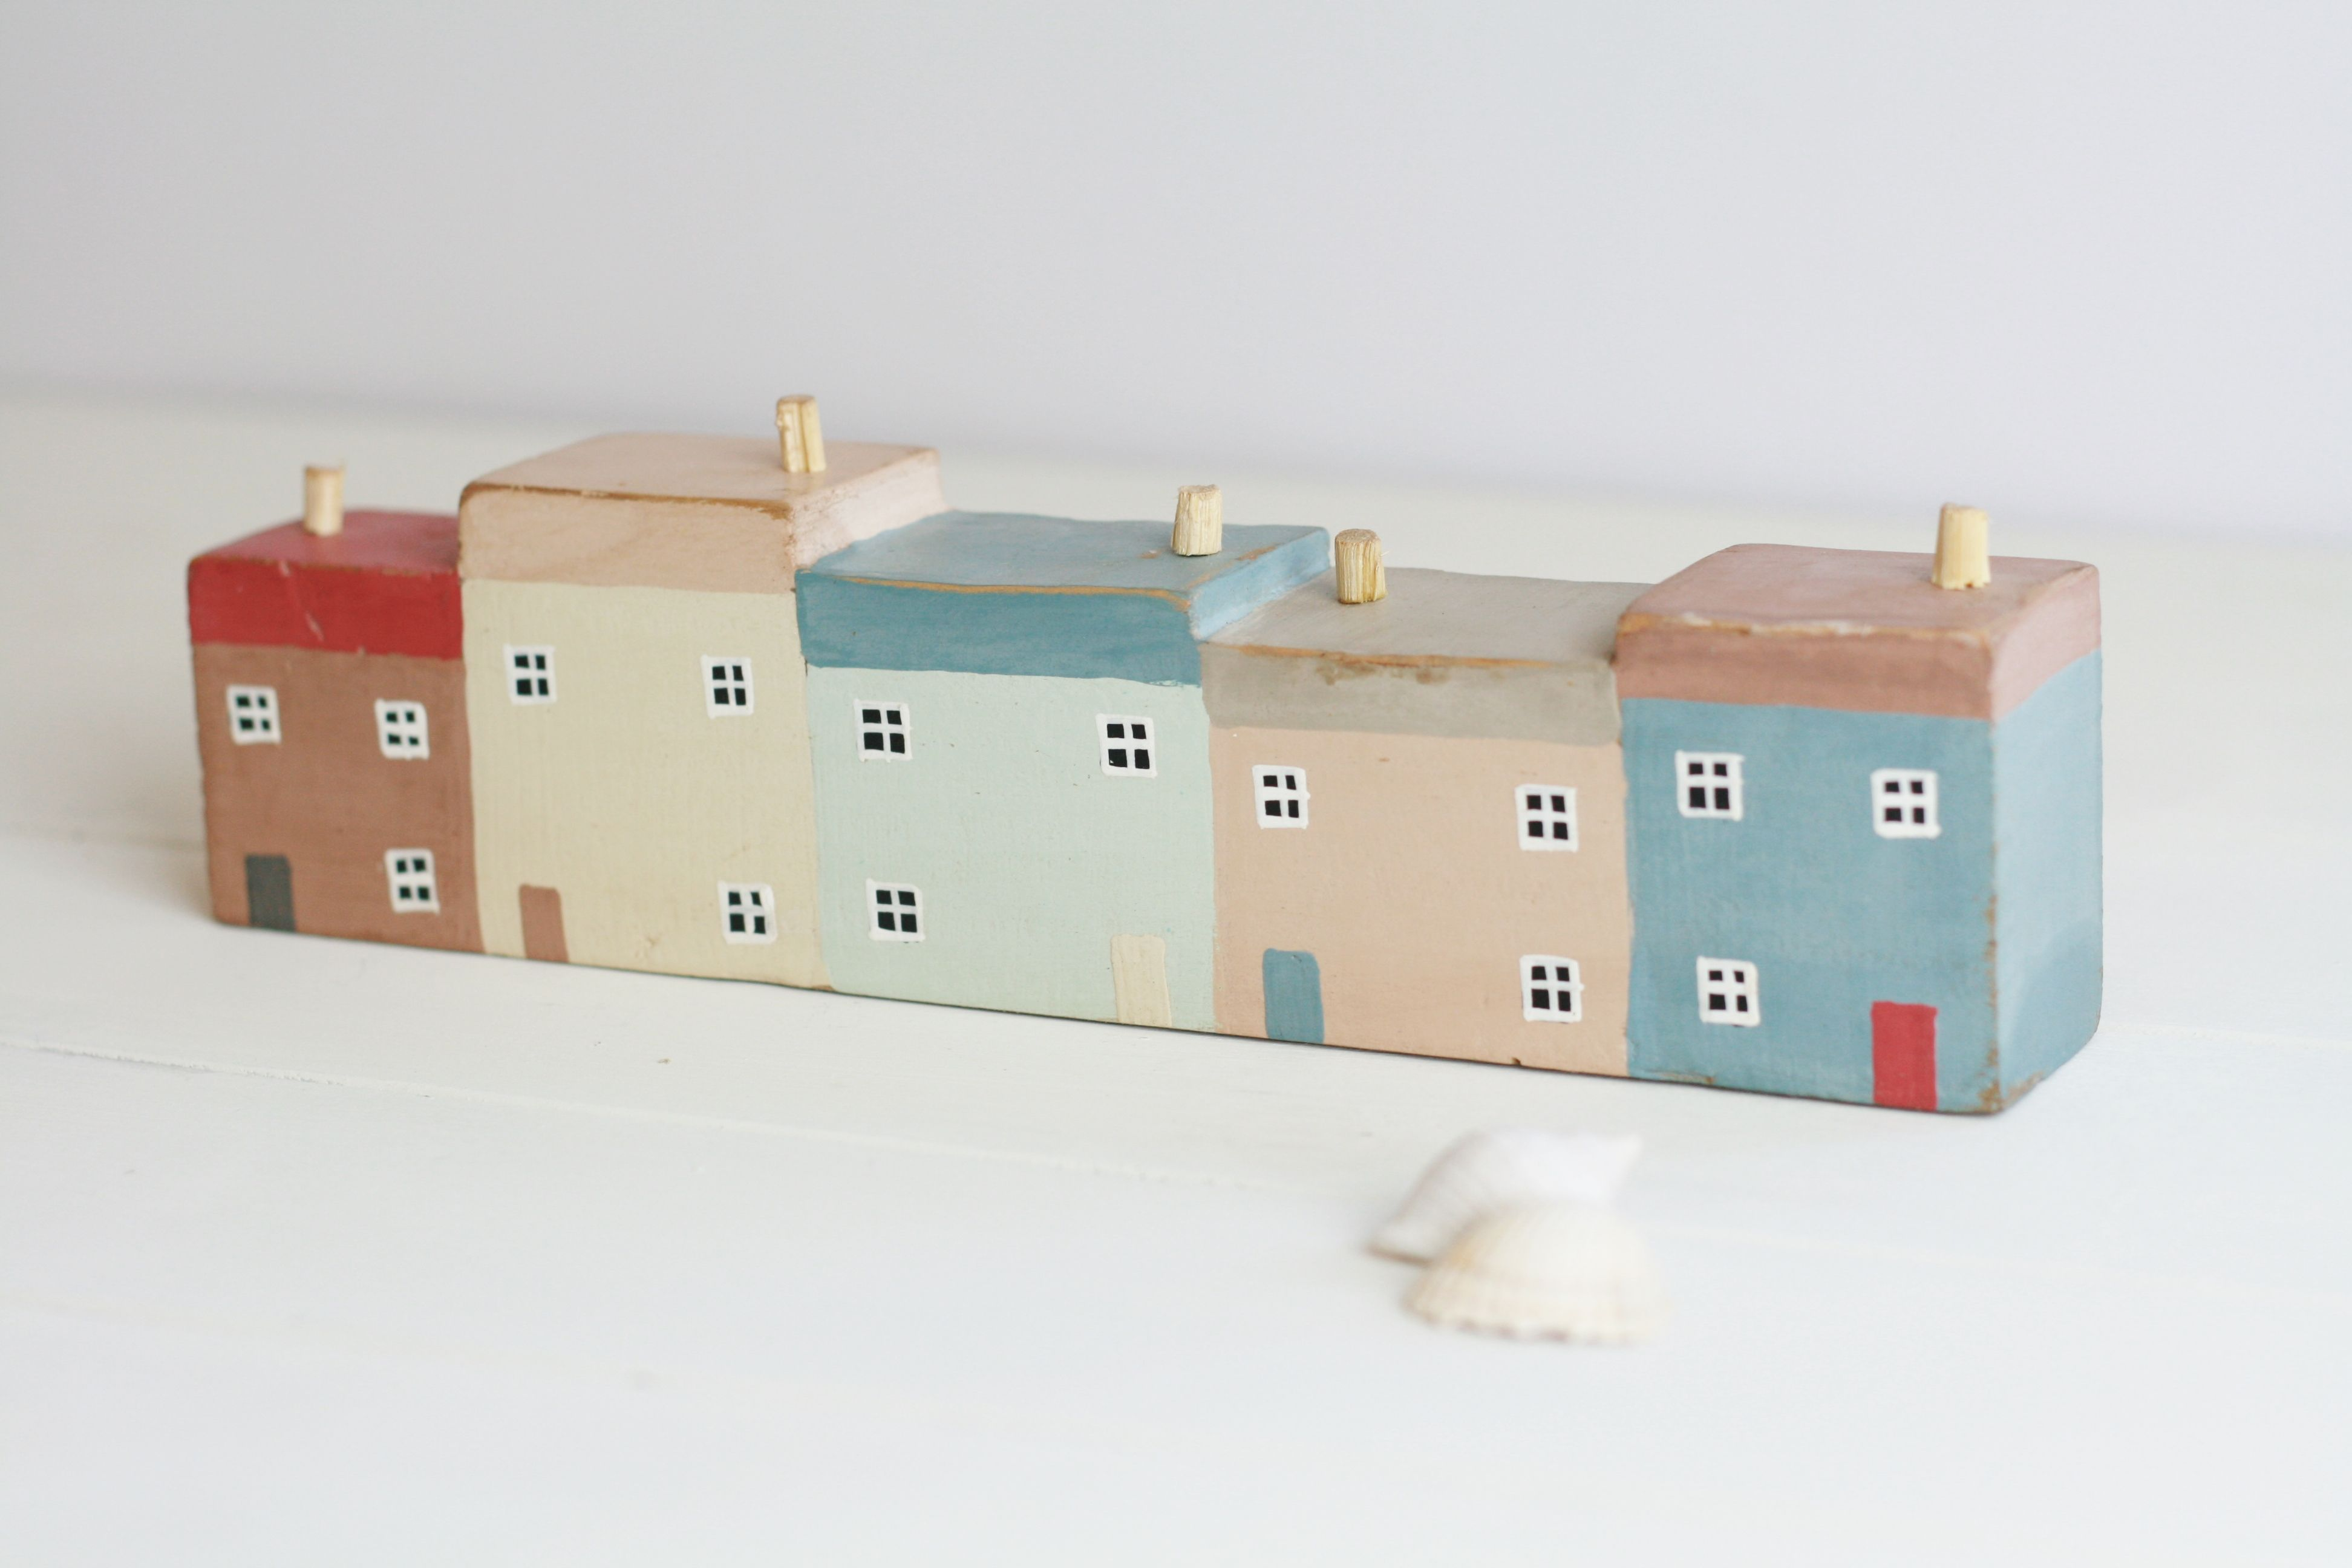 These are a lovely hand-painted row of harbour houses. They are in a chunky style wood and are painted to represent five different coloured houses all in a row. Each one has little painted windows and doors in a simplistic style with different coloured roofs and wooden chimney pots. This would make such a cute accessory on the shelf of a bathroom, or in a cottage with a nautical or seaside themed room. It would also make a great gift. Size: L25cms x H7cm x D4cms